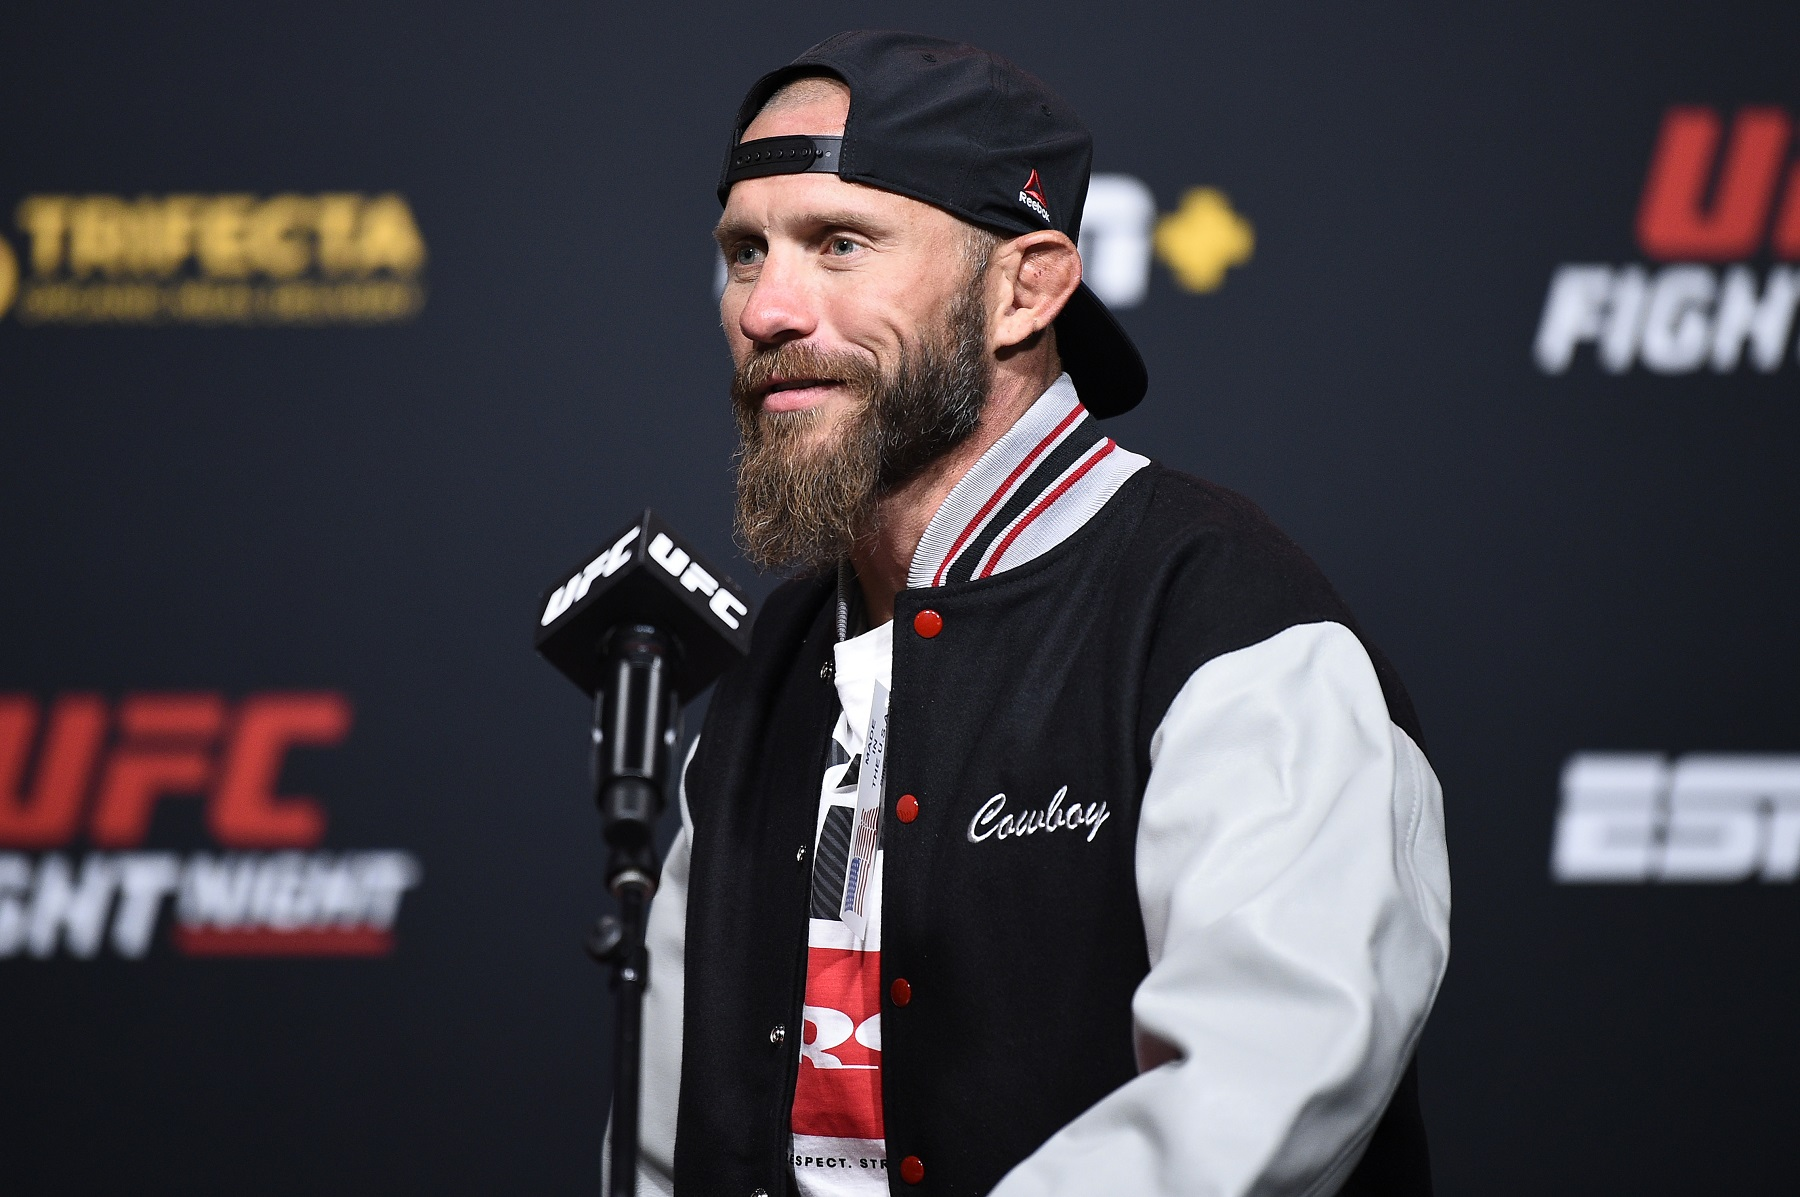 Cowboy Cerrone Is Running Out of Time in the UFC To Pad His Net Worth